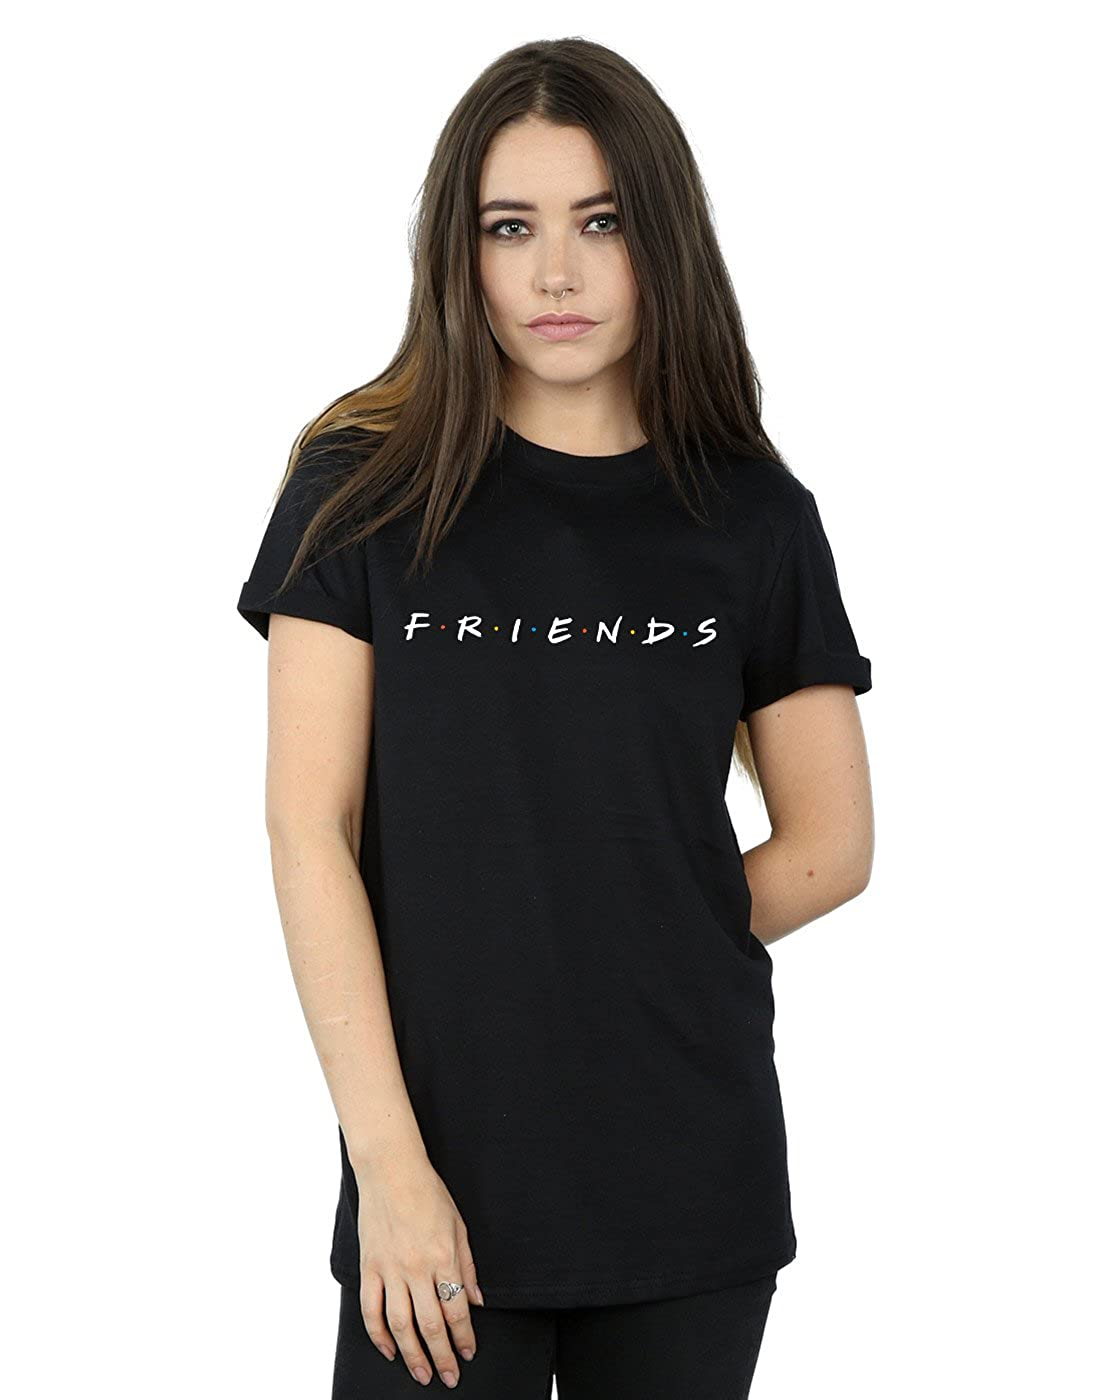 Friends Donna Text Logo Boyfriend T-Shirt Fit Absolute Cult